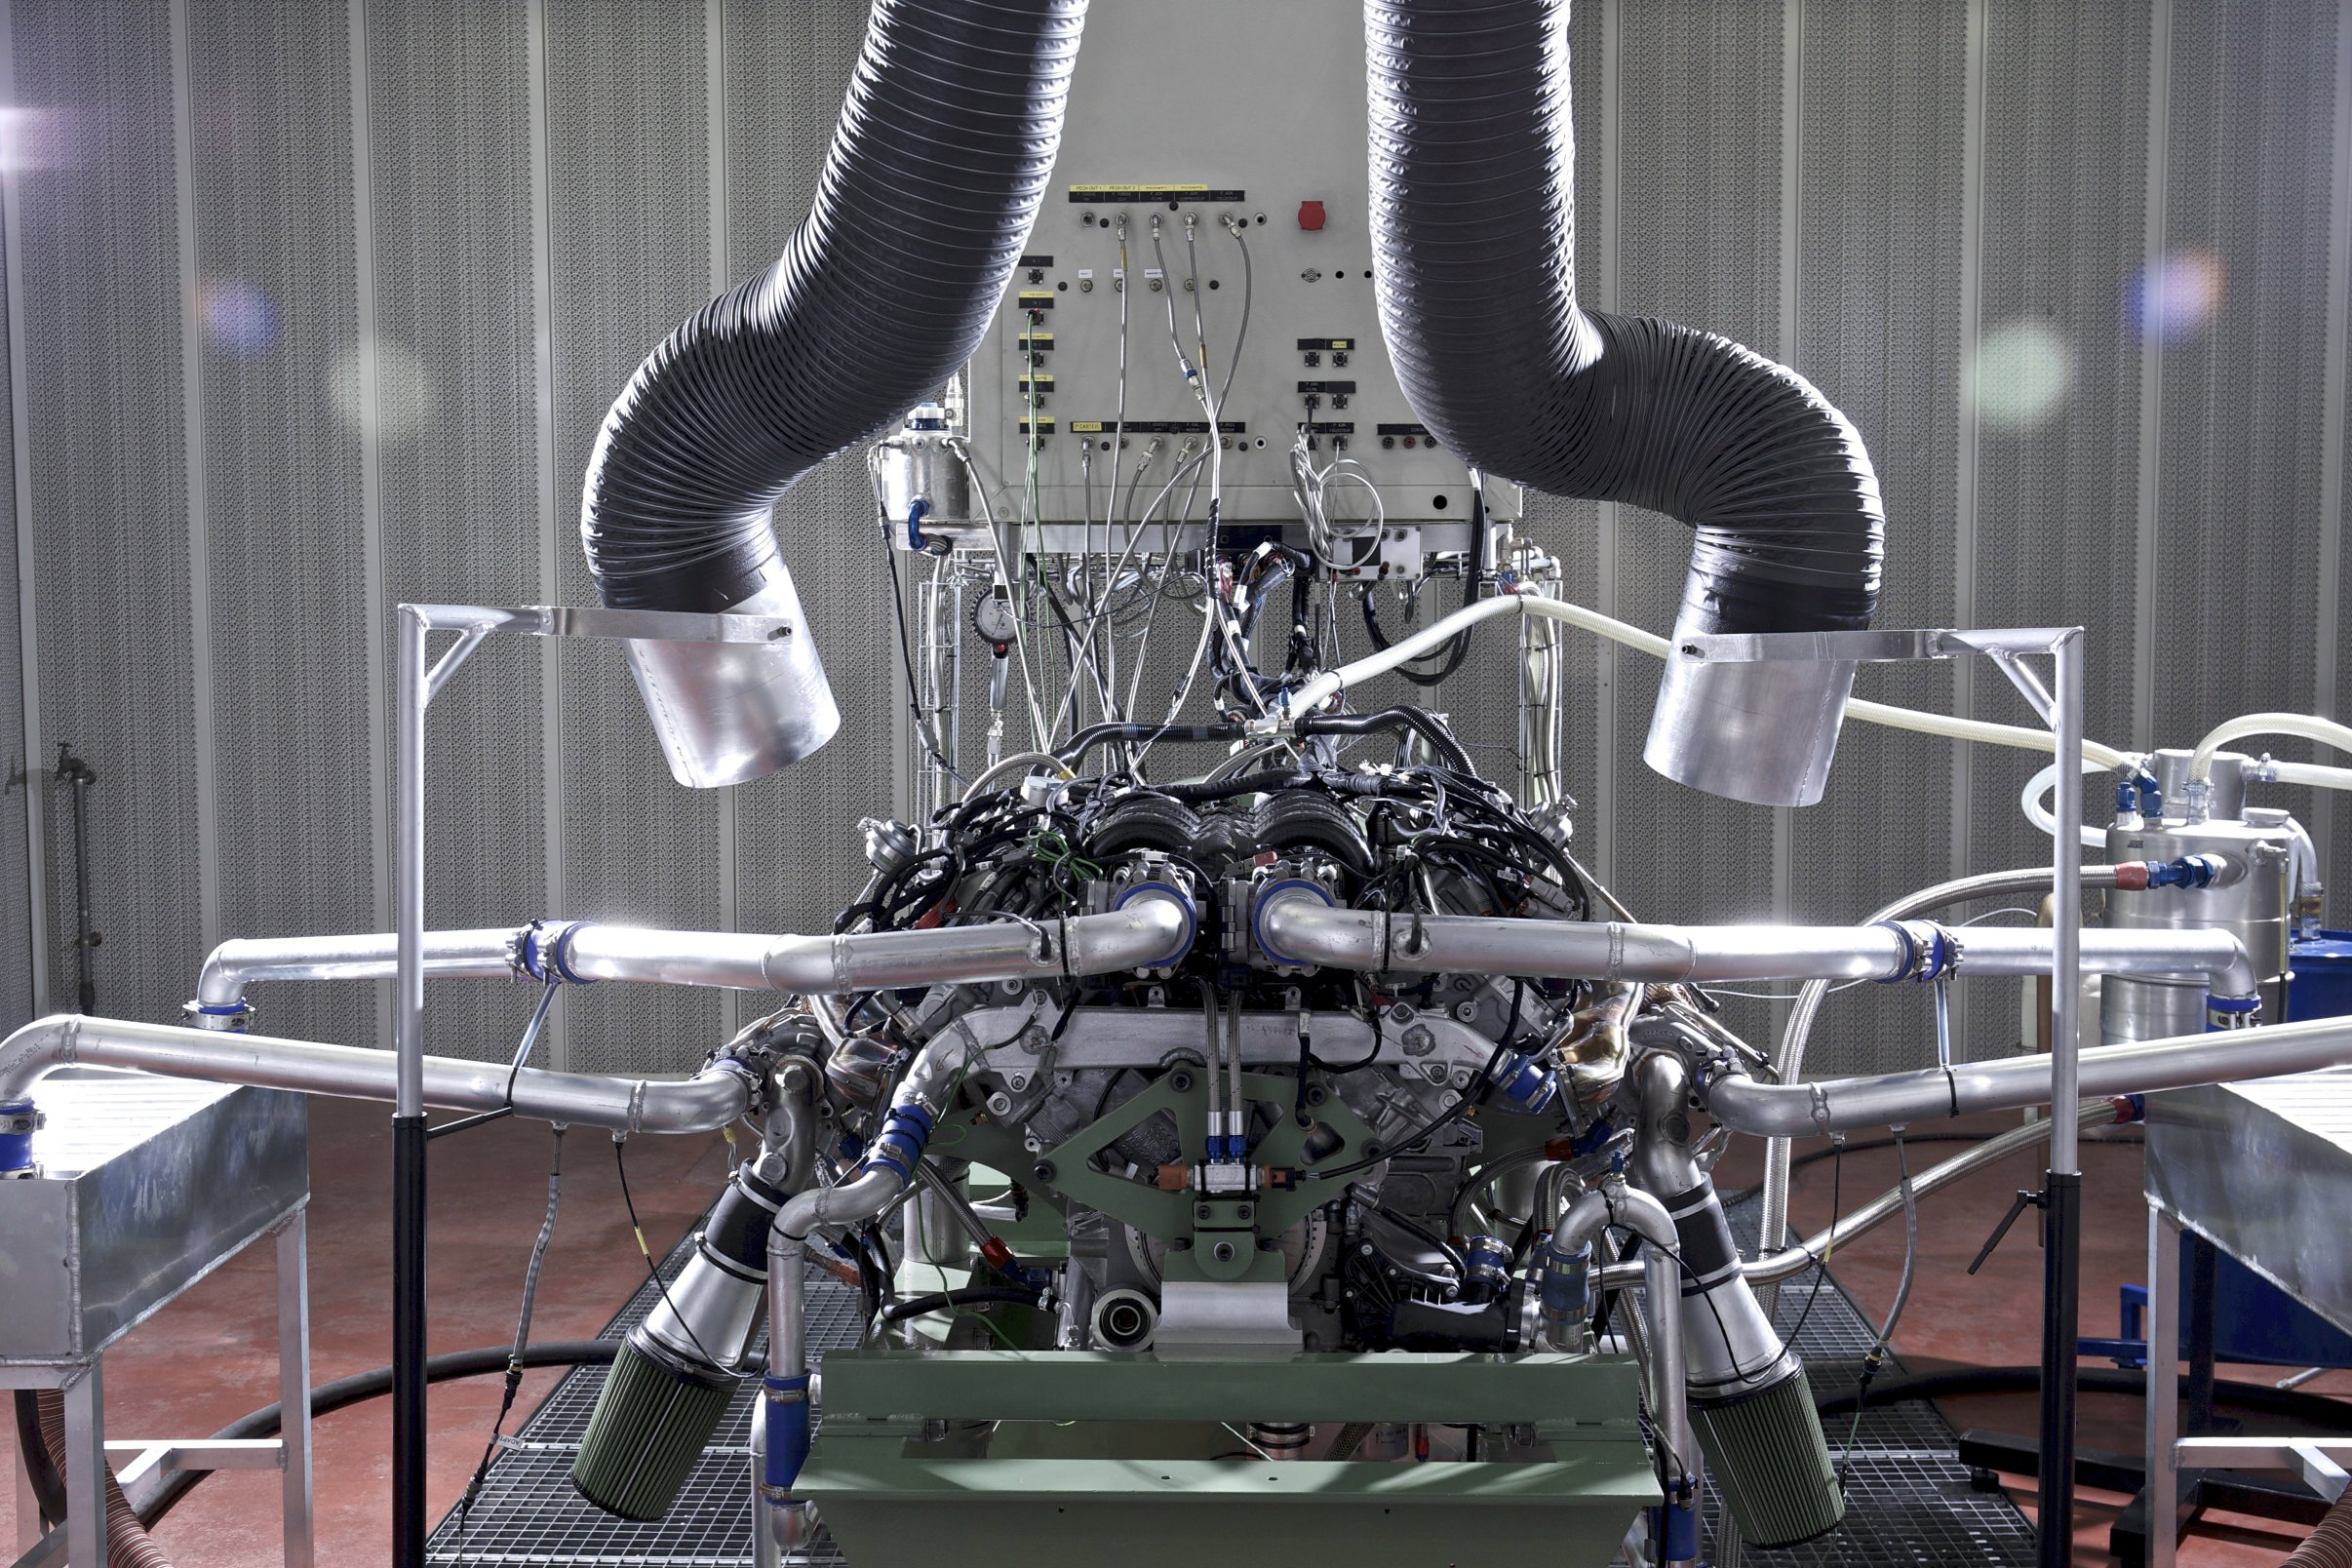 The engine of the Bentley Continental GT3 racer.